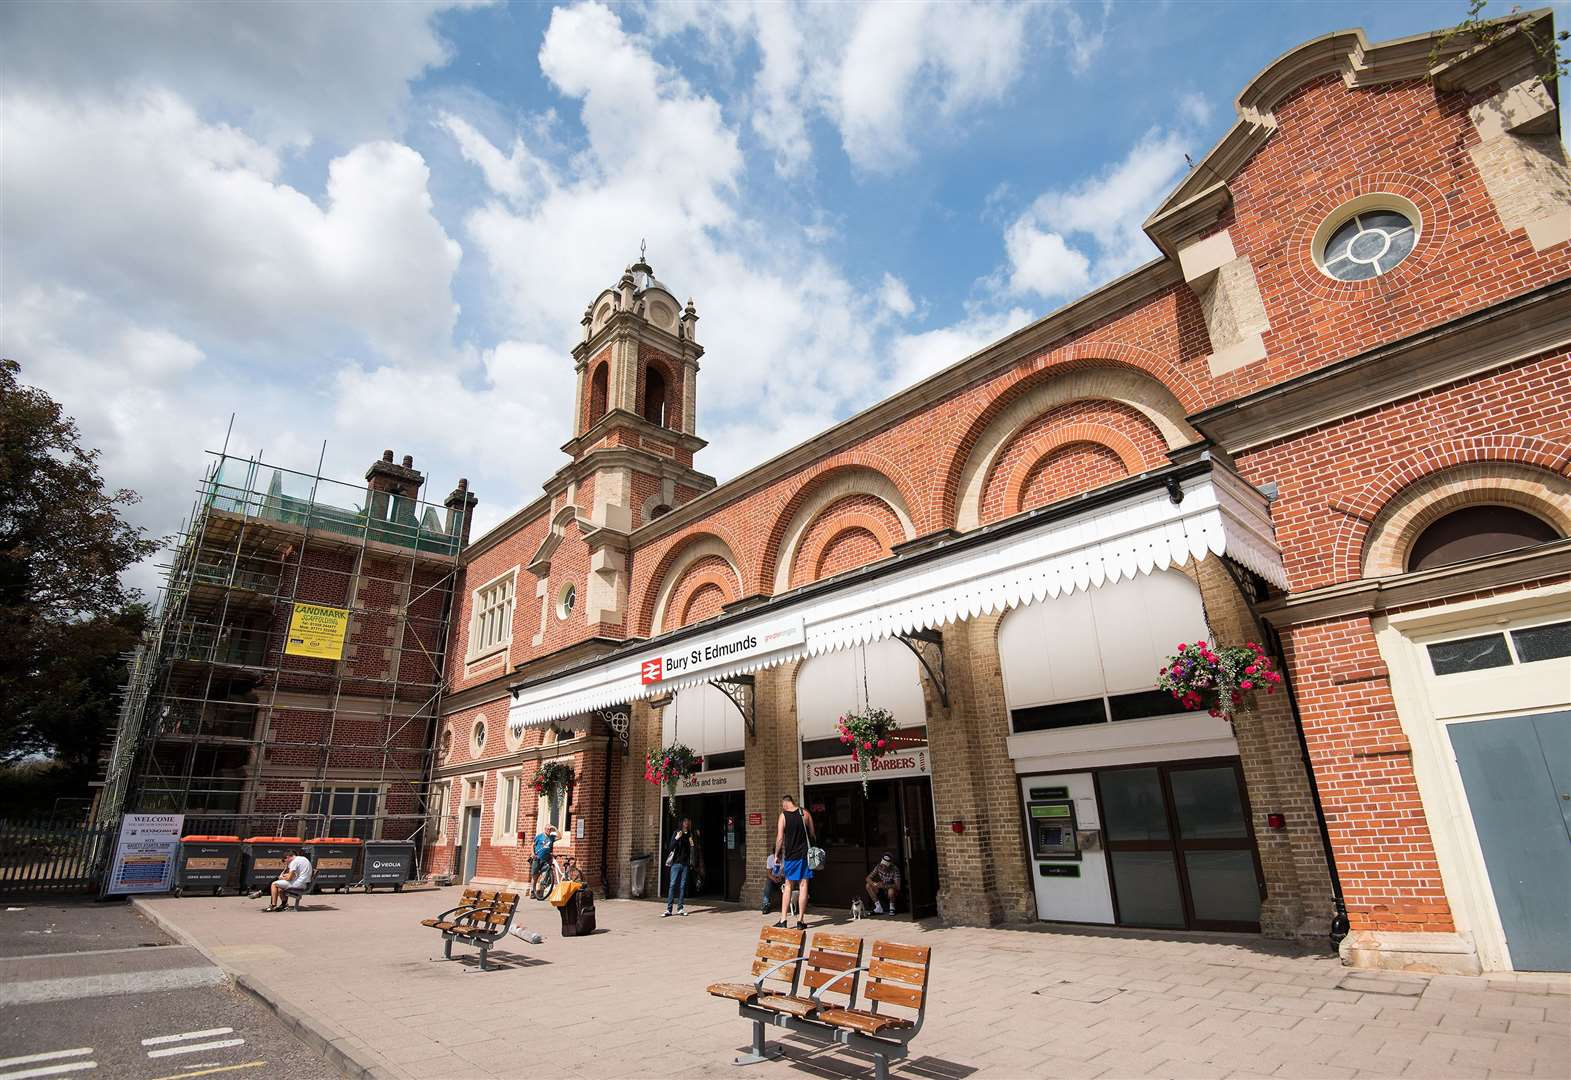 Bury station is getting a new entrance and side exit